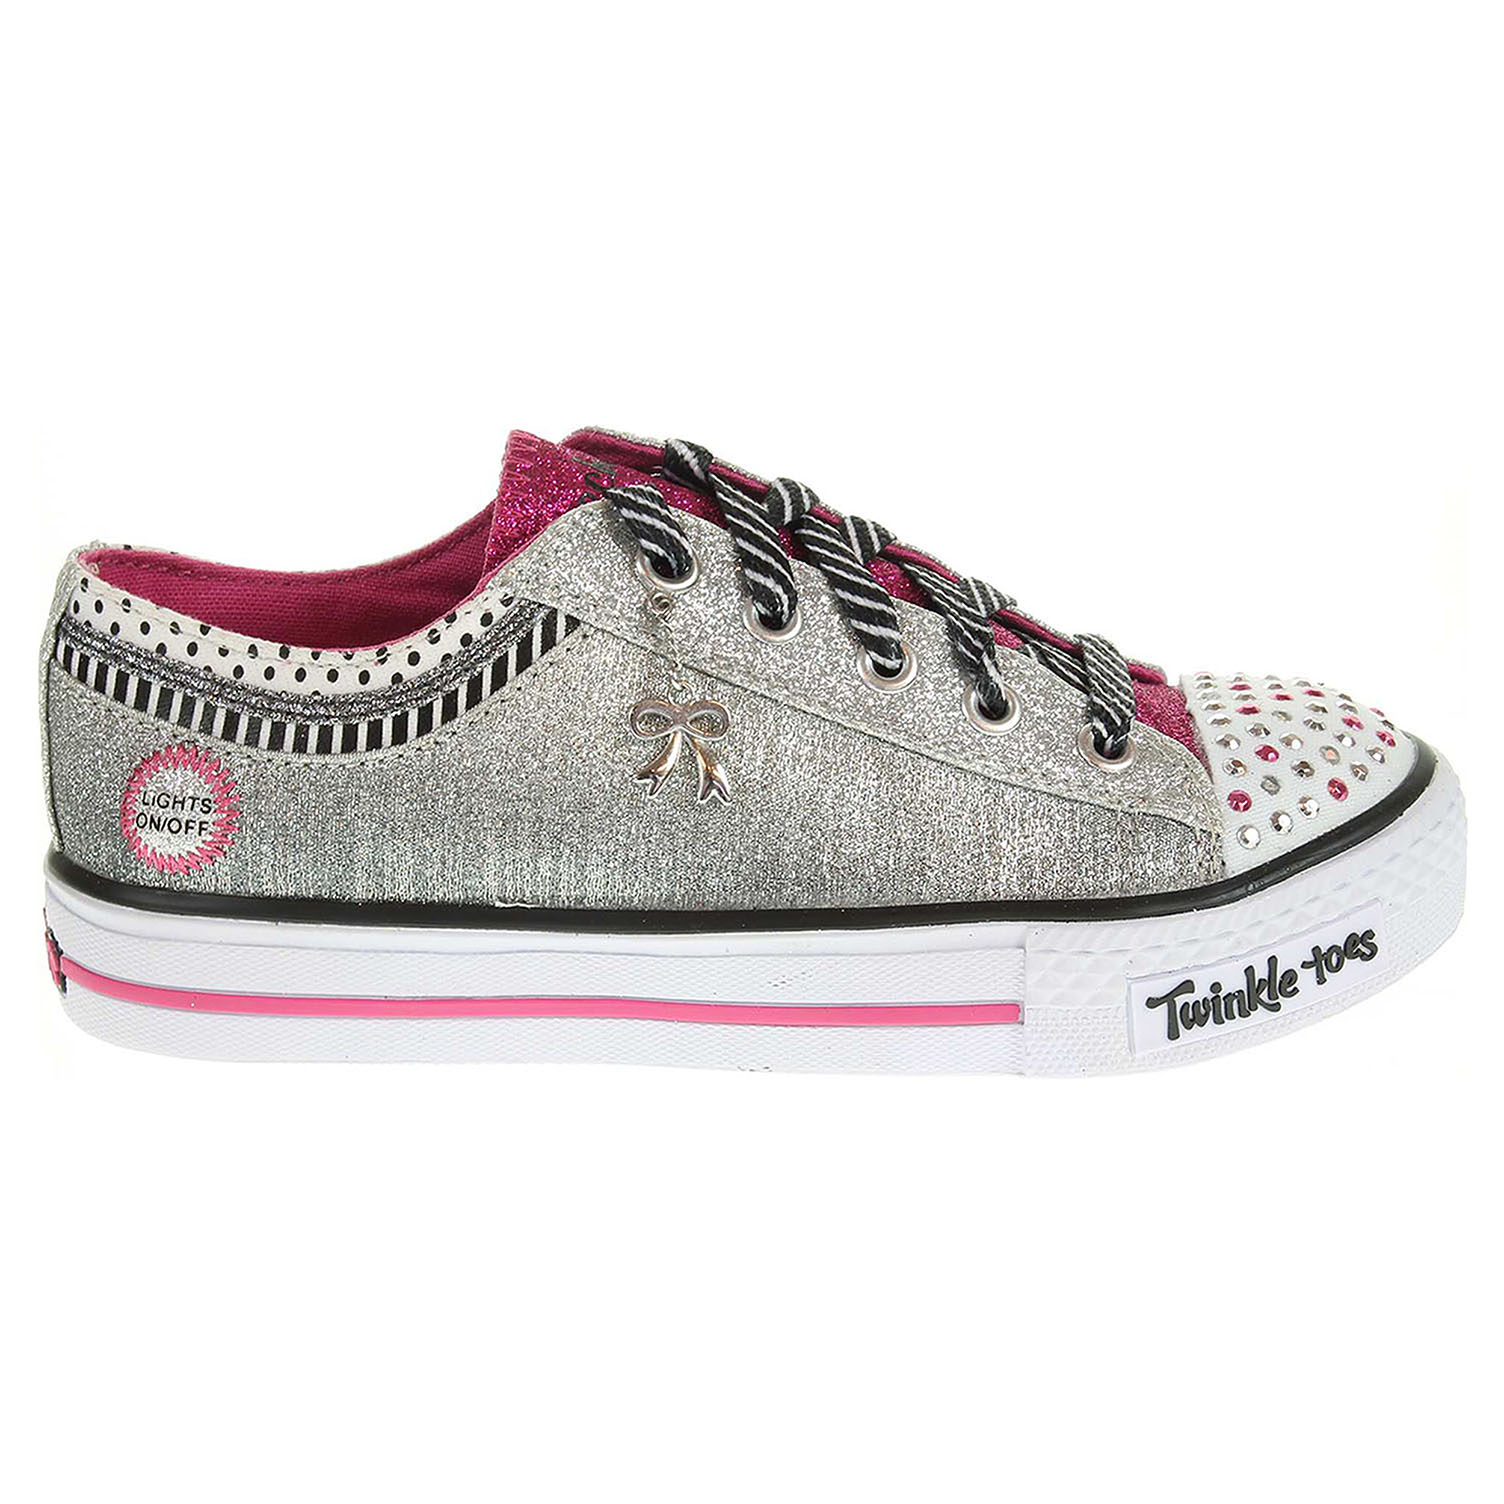 Ecco Skechers Charmingly Chic silver-hot pink 26600107